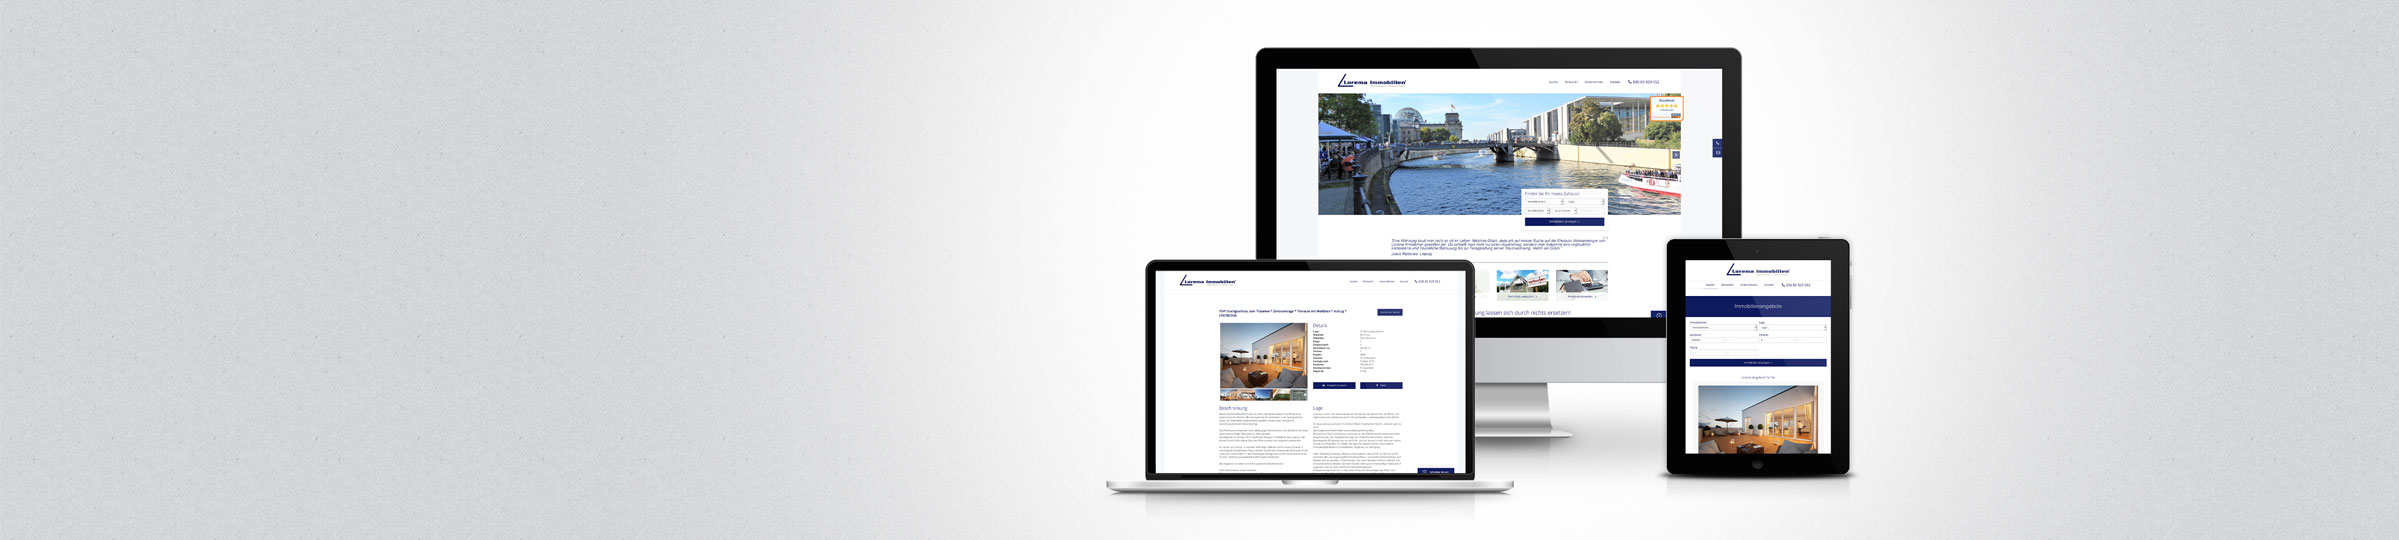 slider-immobilien-website